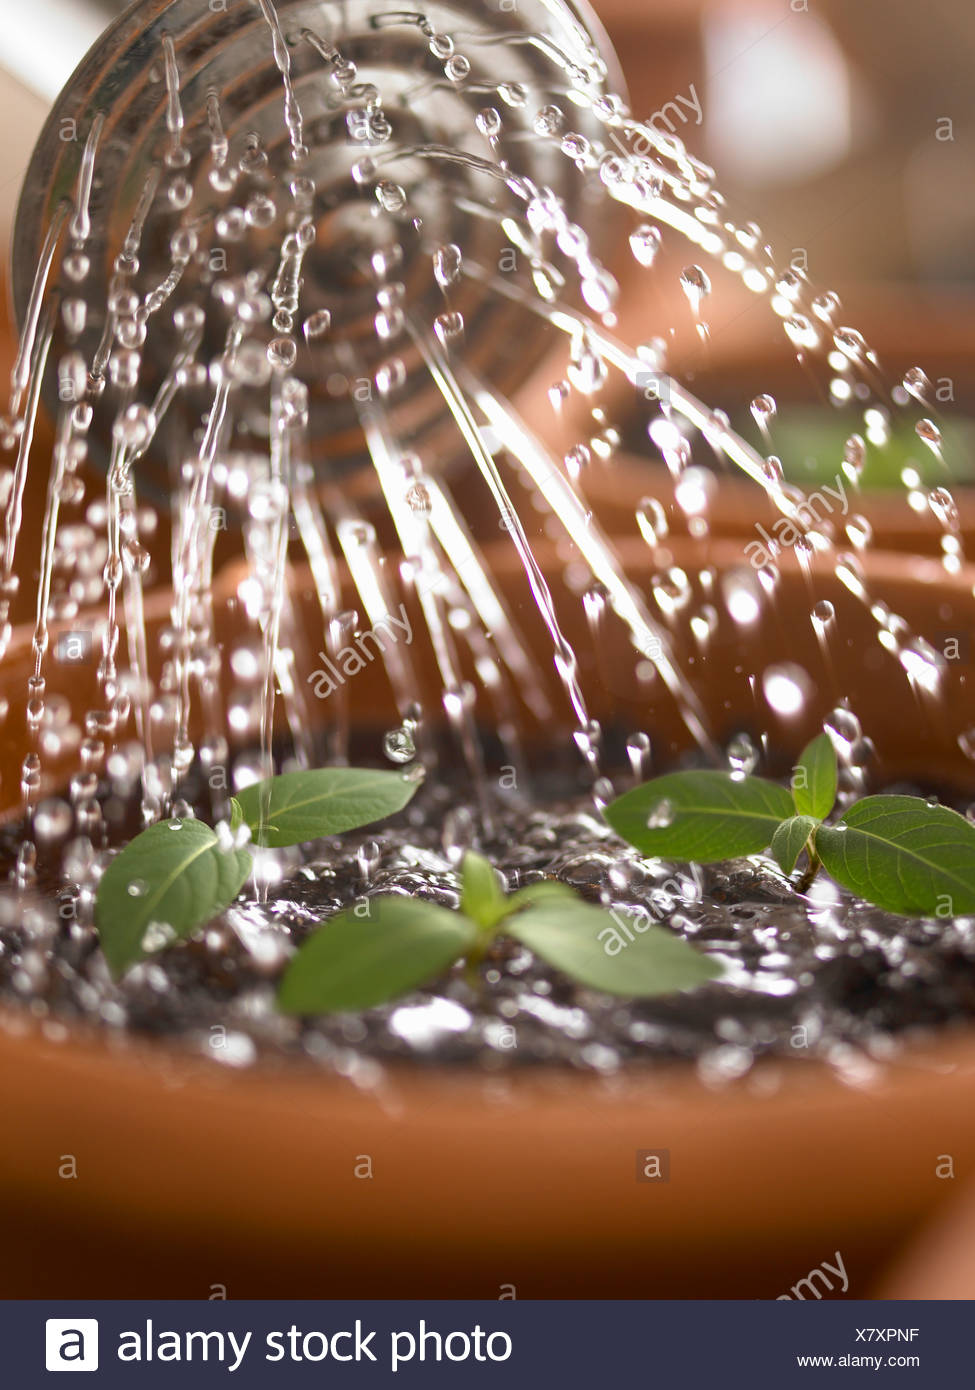 Close up of watering can watering seedlings in flowerpot - Stock Image